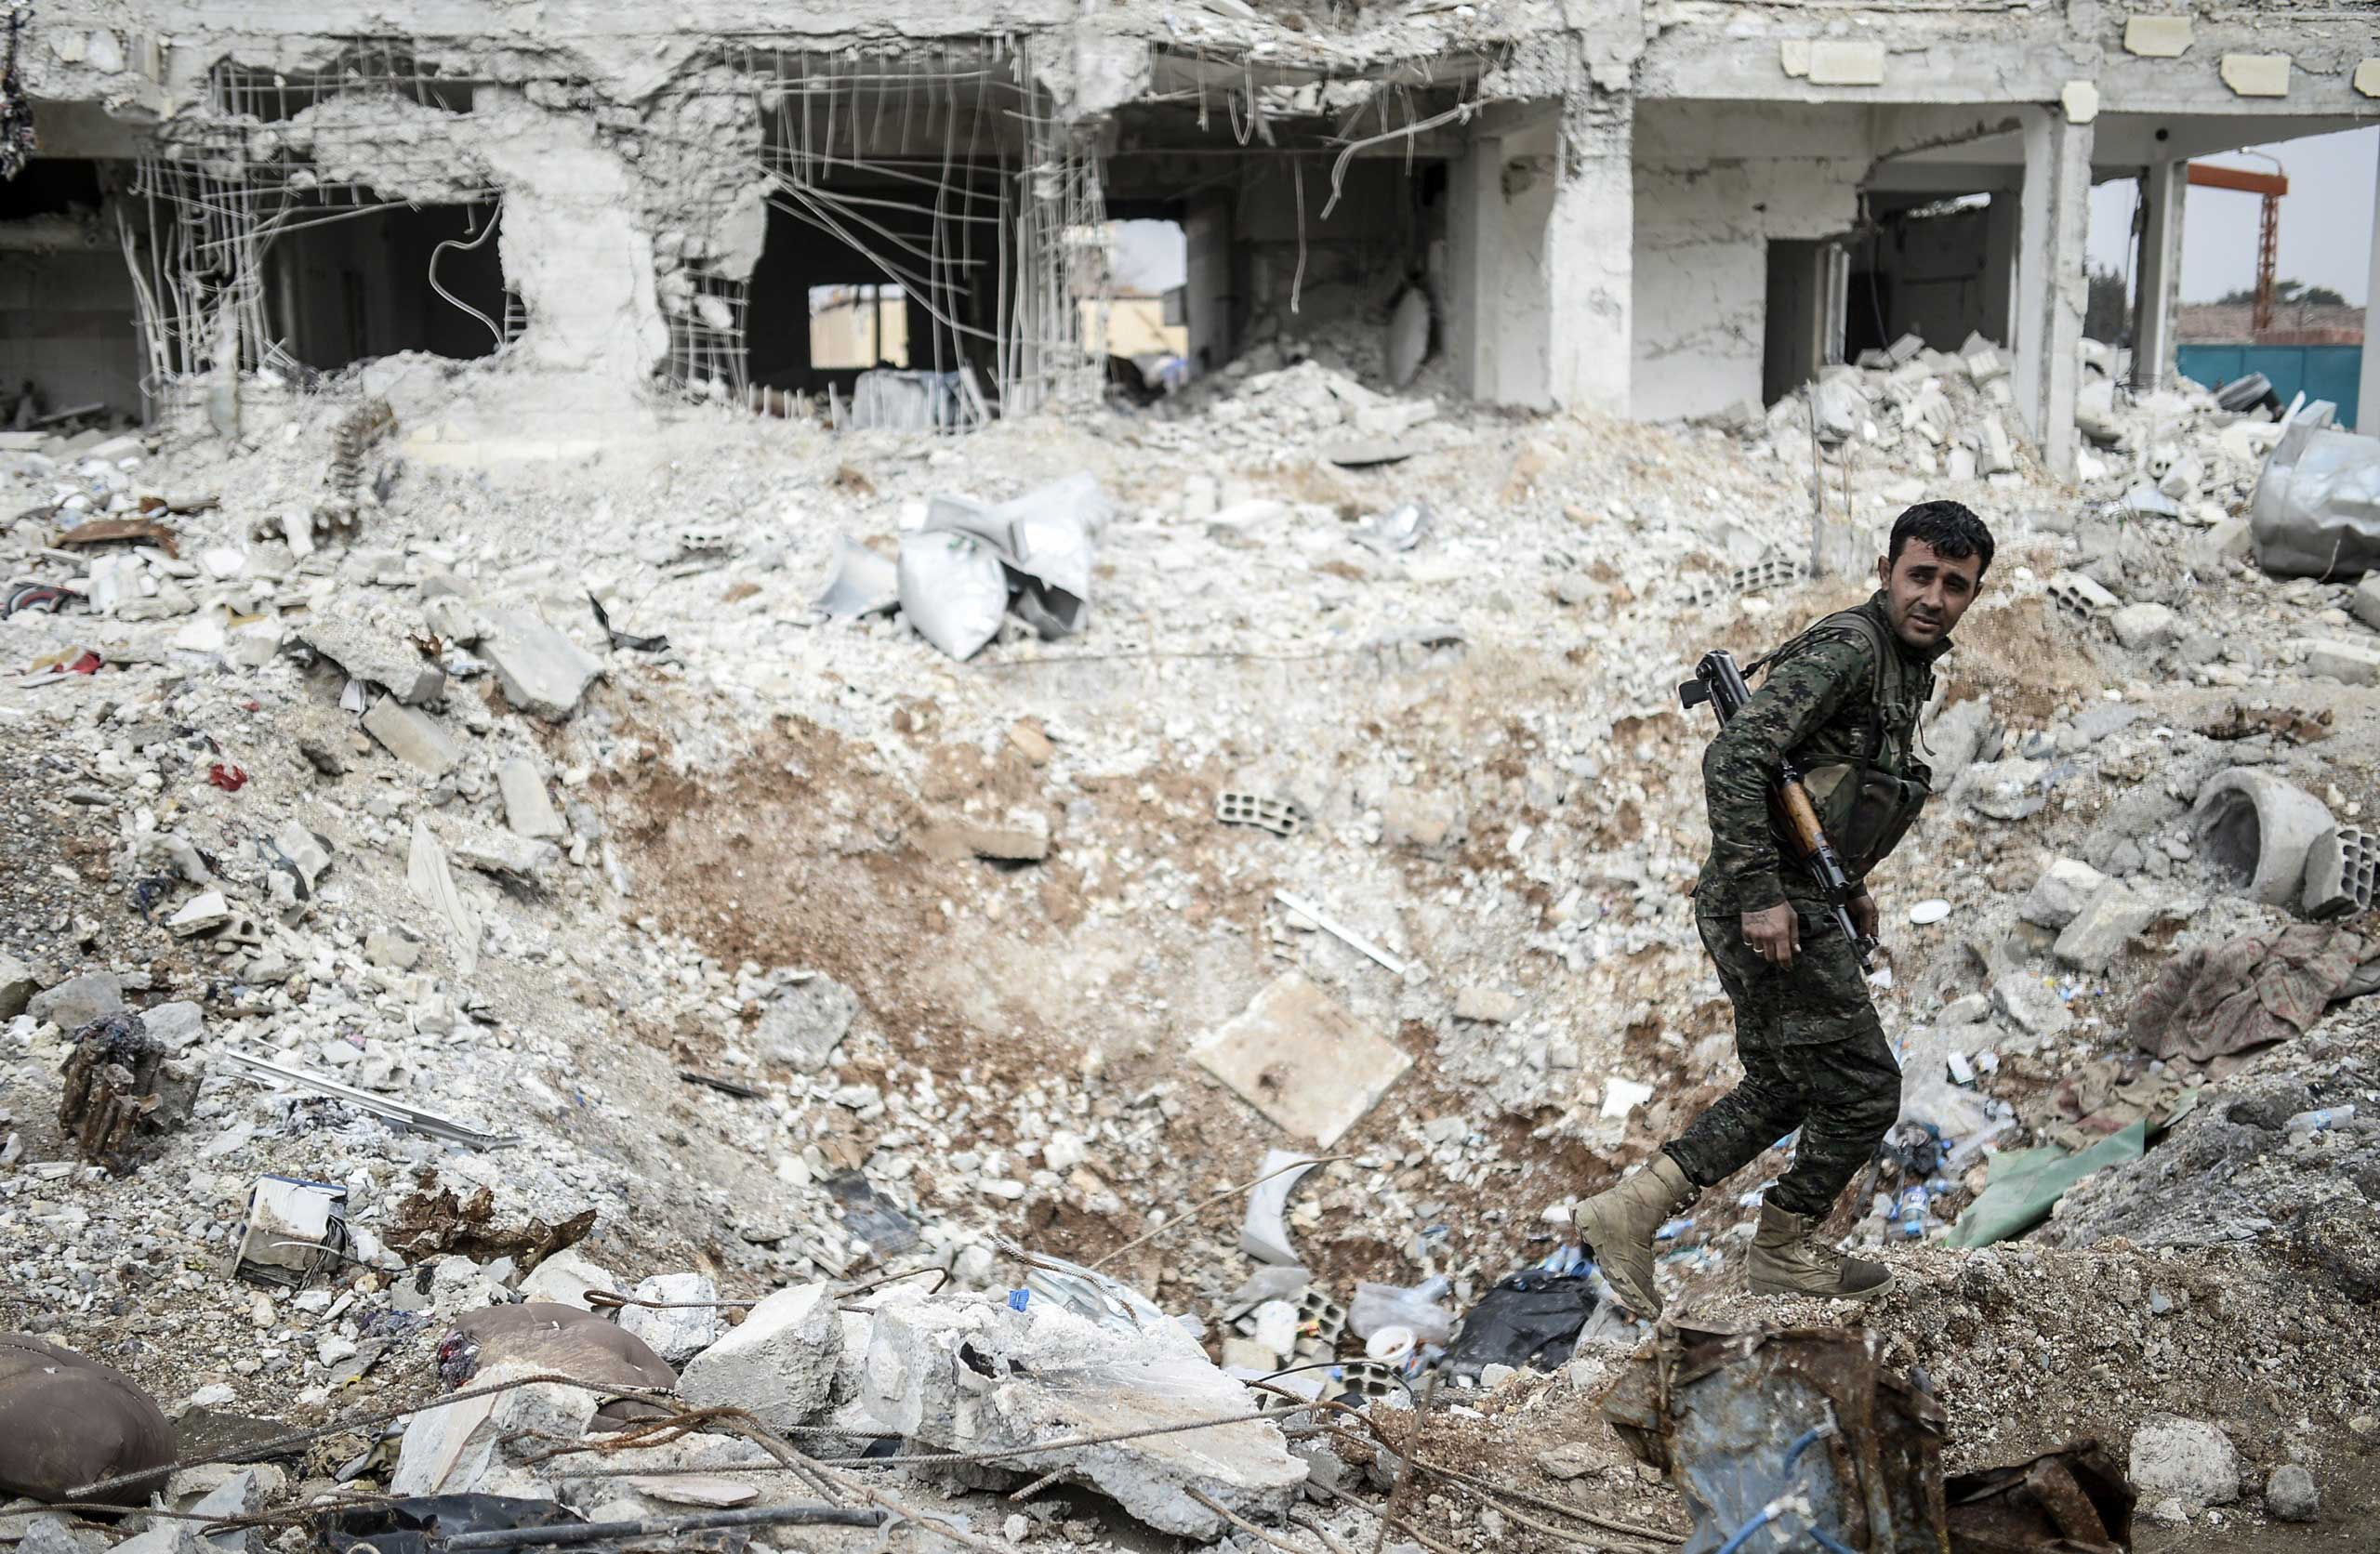 A Kurdish fighter walks through the wreckage of a building in the center of the Syrian town of Kobani on Jan. 28. 2015.